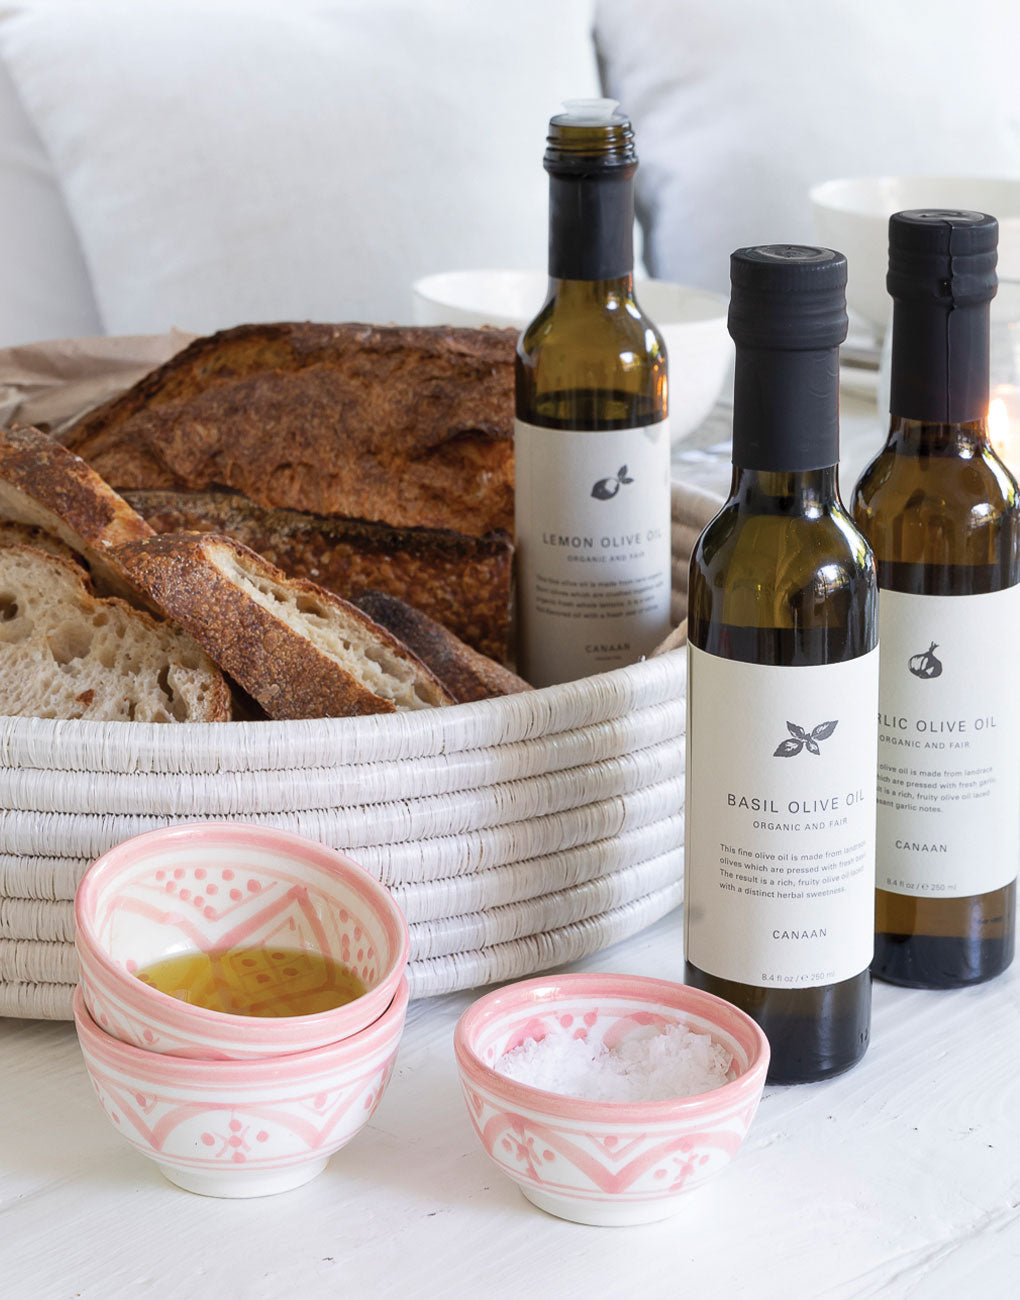 Basil-Infused Olive Oil | The Little Market